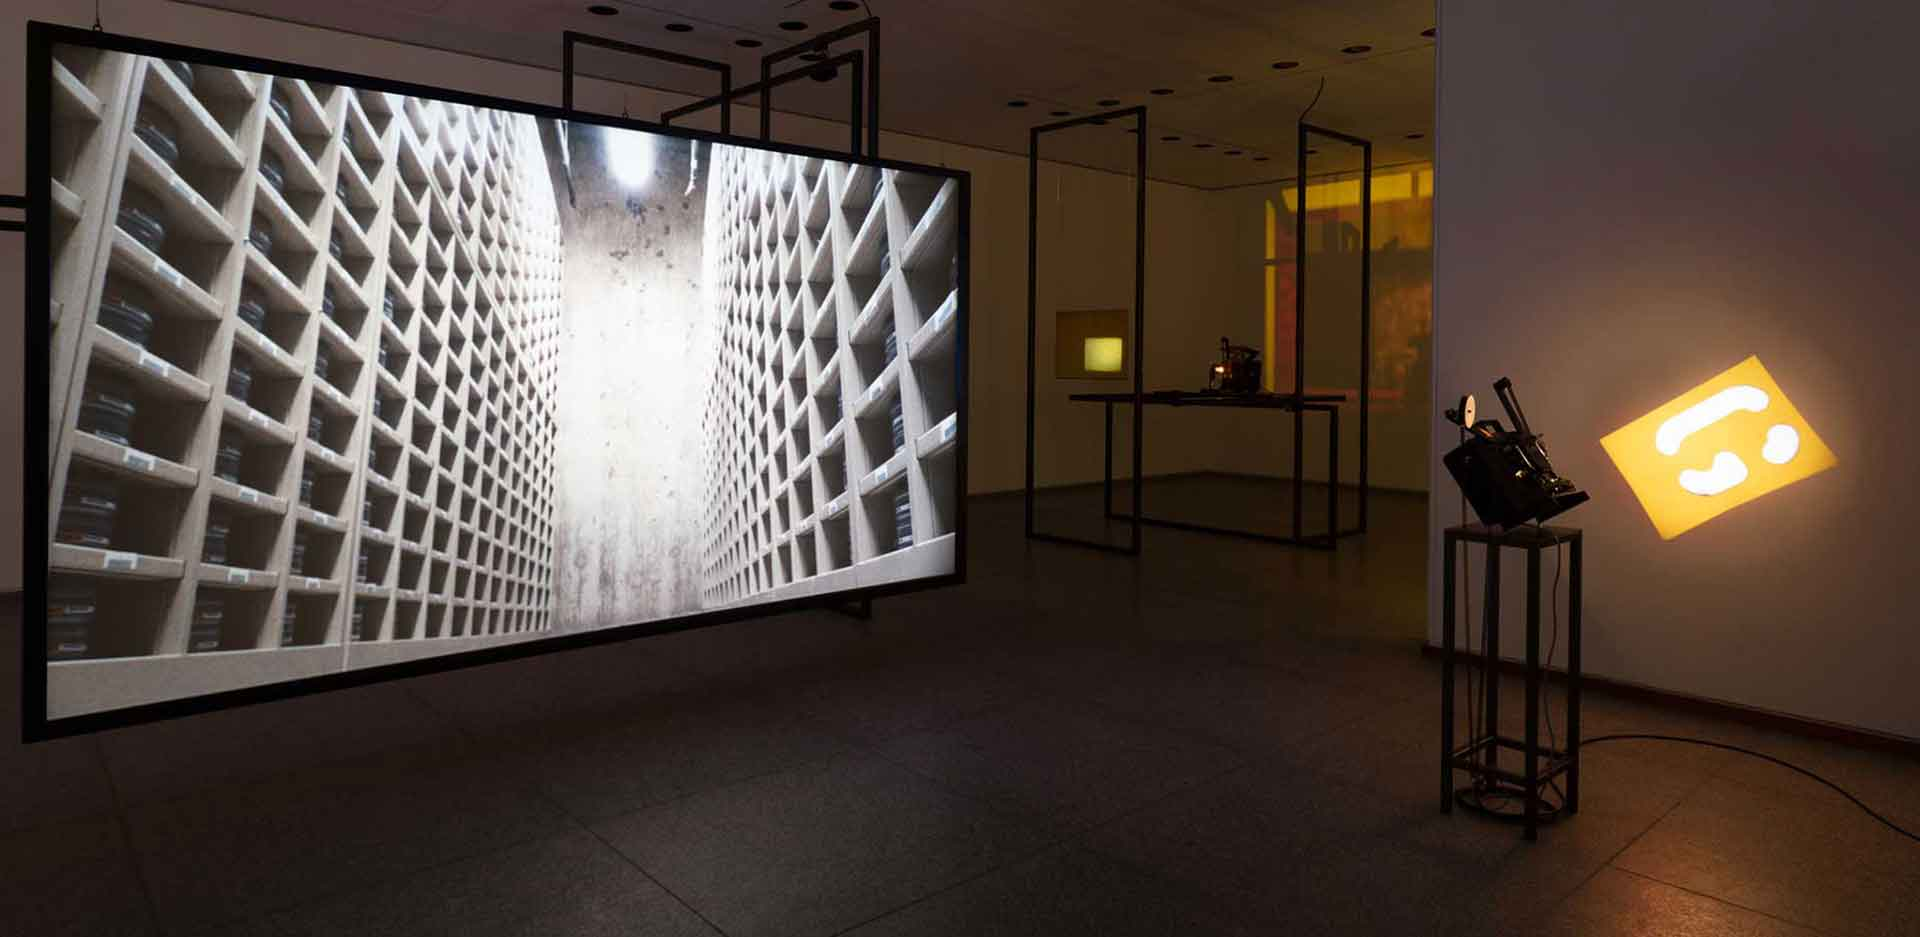 Rosa Barba. In a Perpetual Now, Exhibition view, Neue Nationalgalerie, 2021